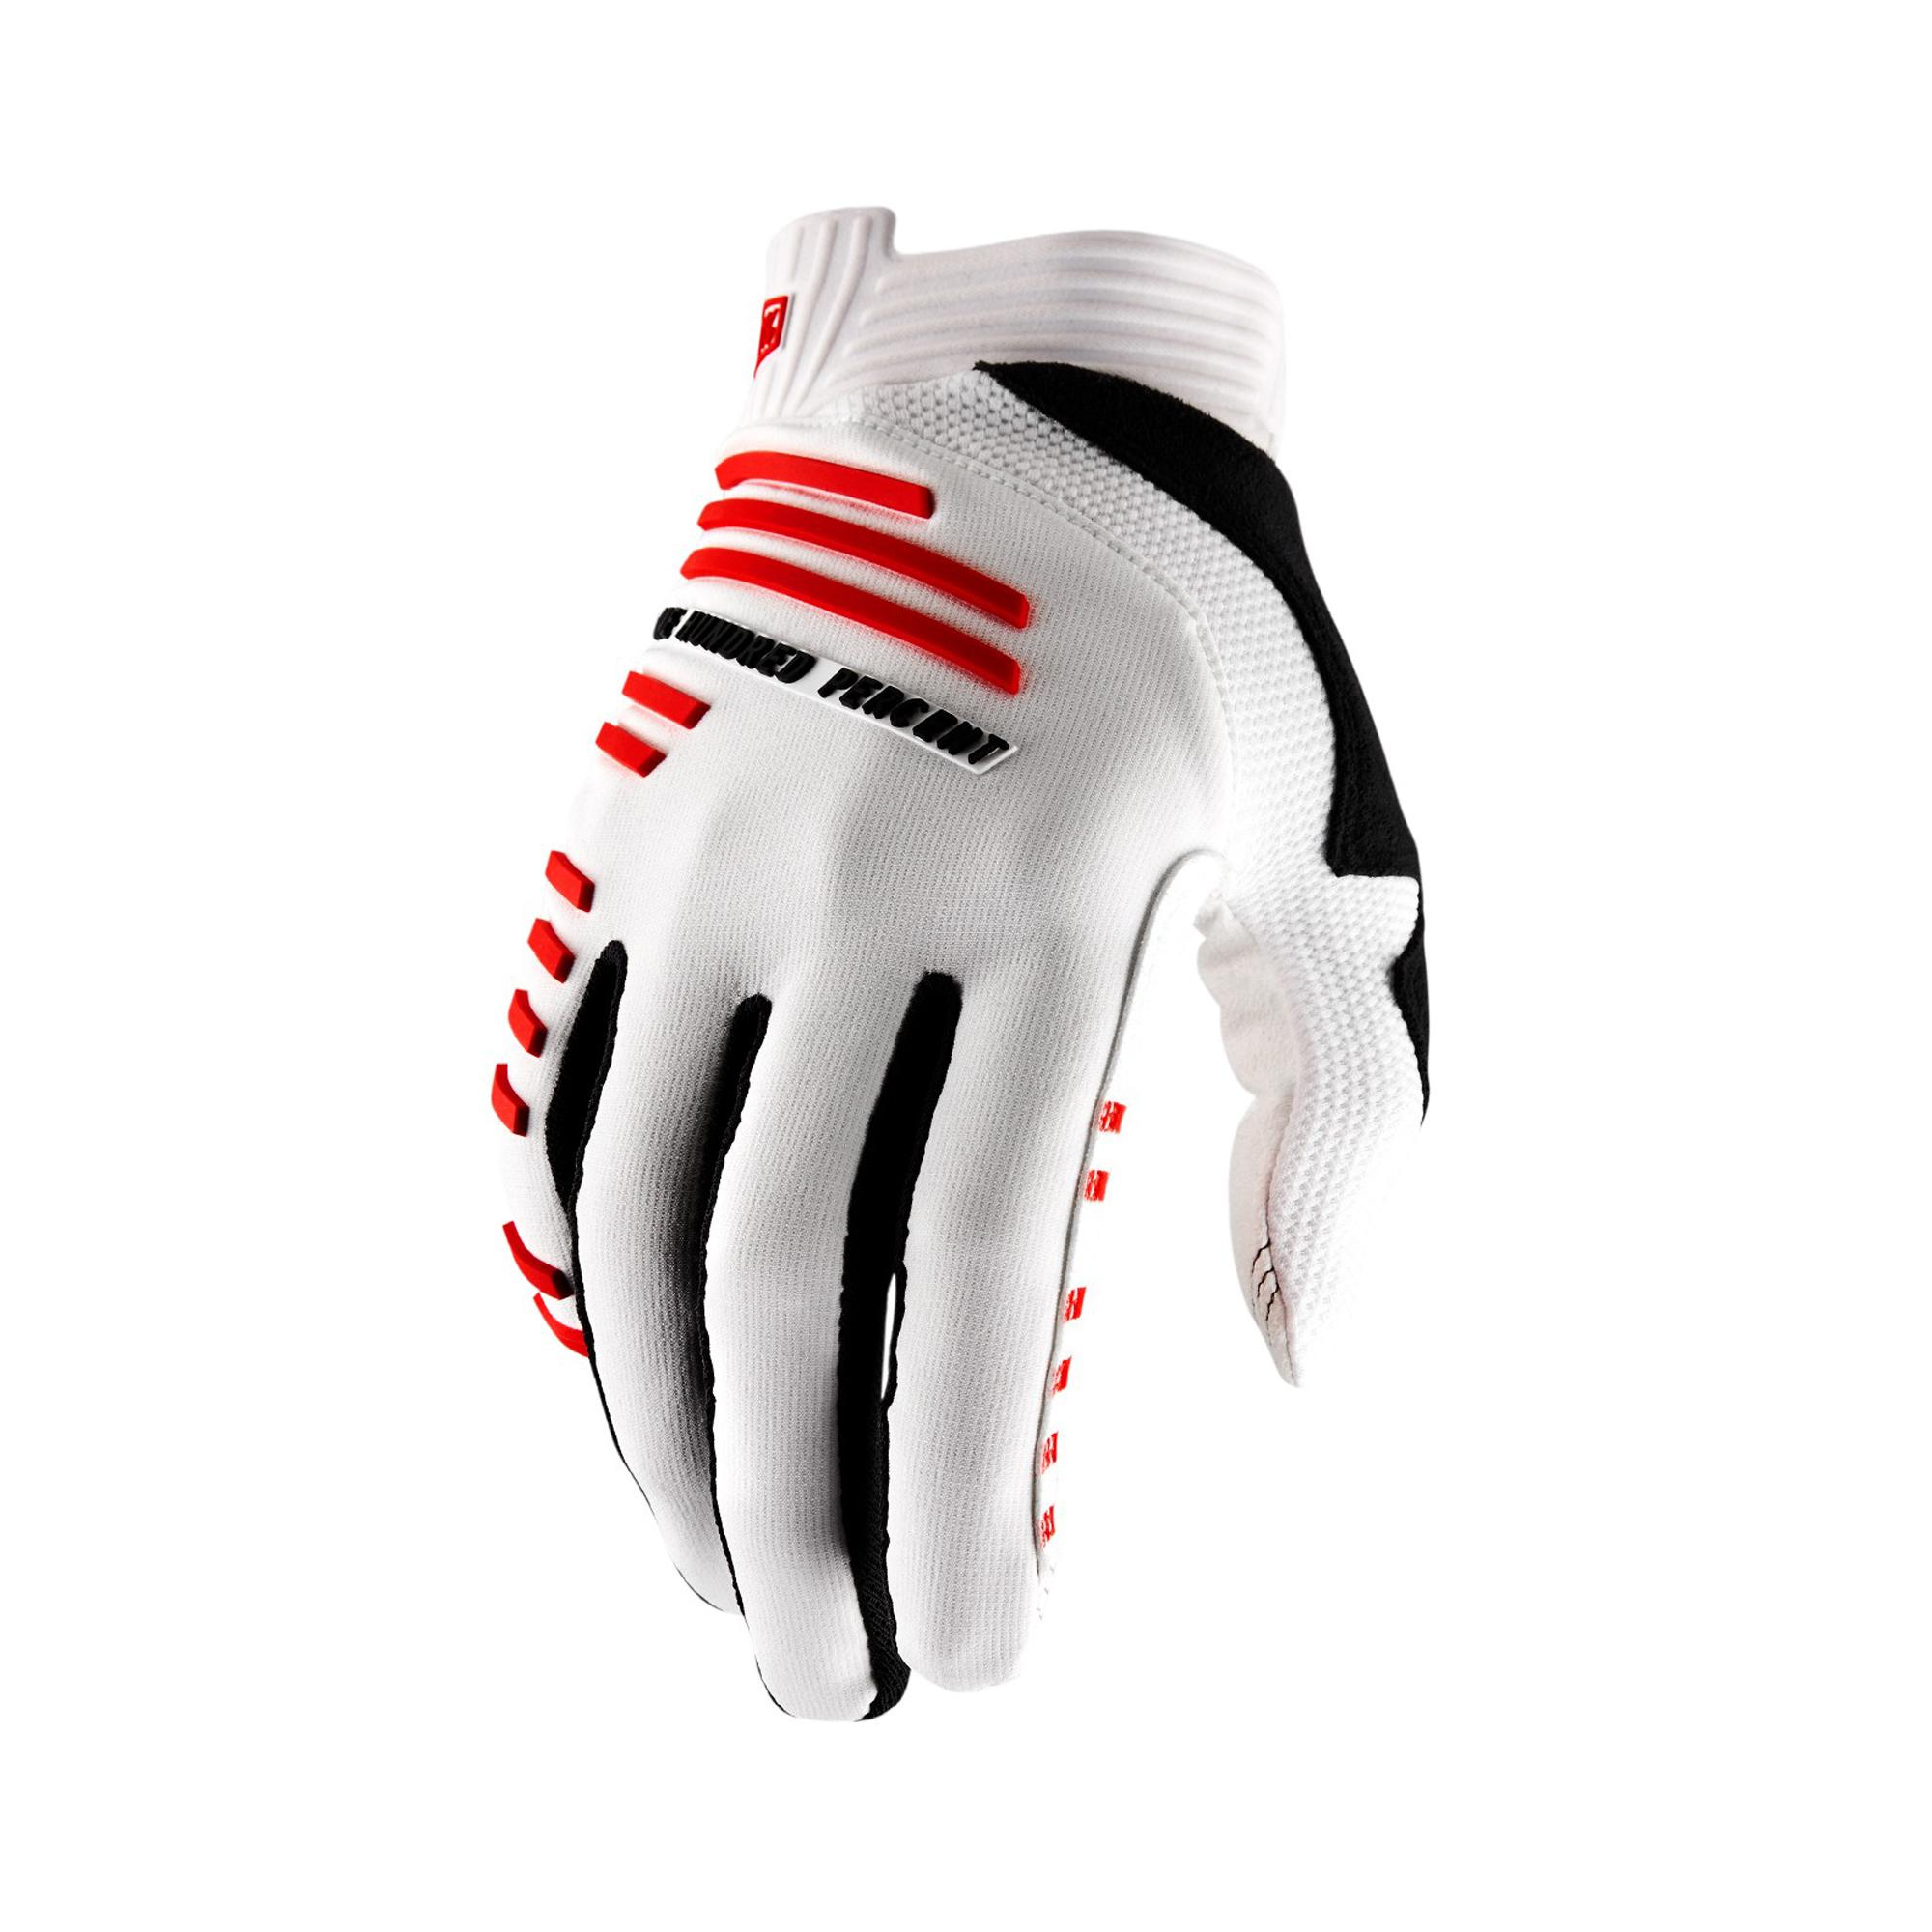 R-CORE Glove White -